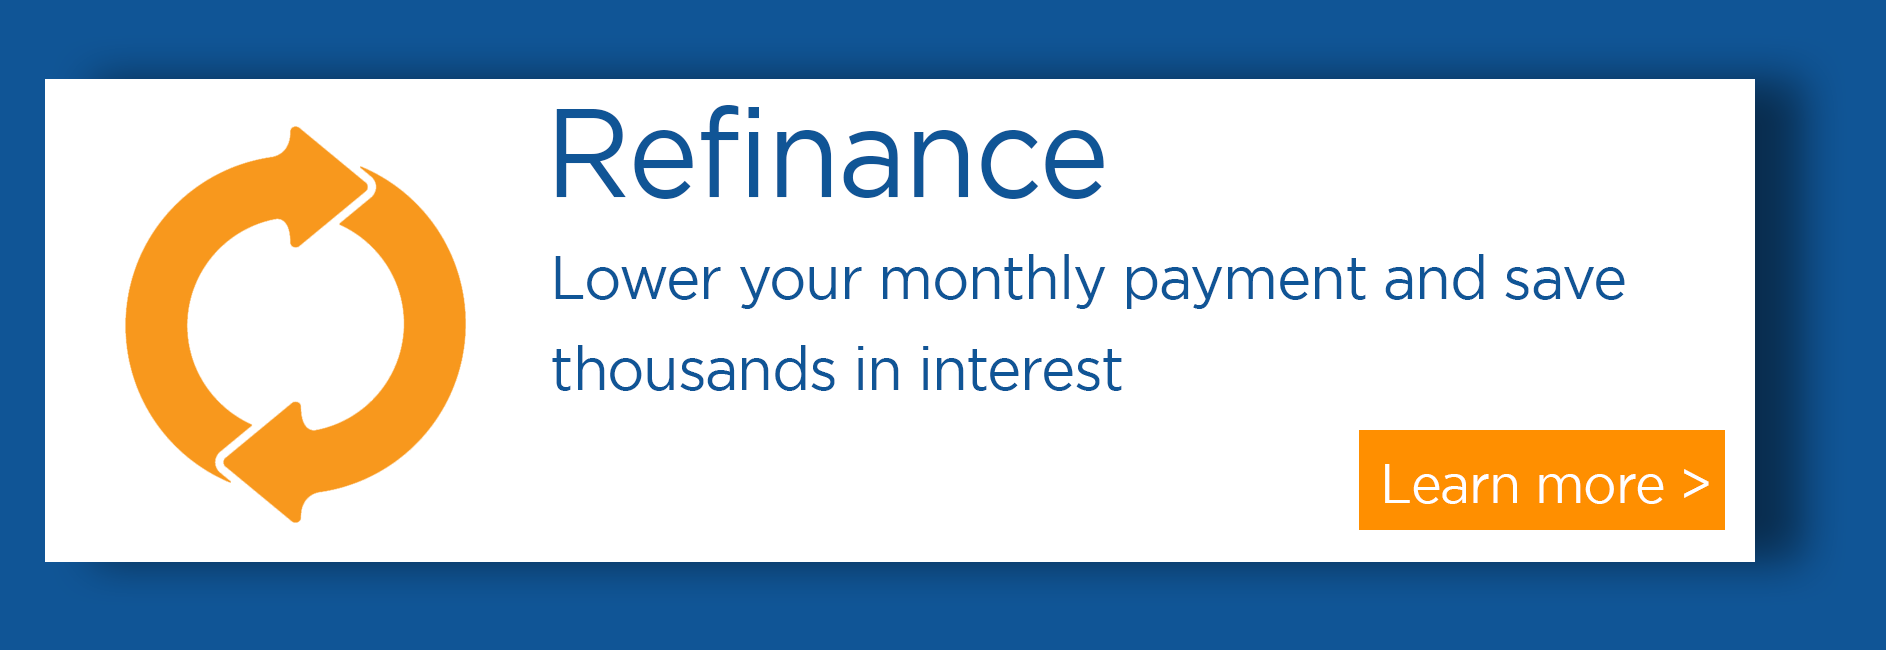 refinance your home and save with Central Sunbelt